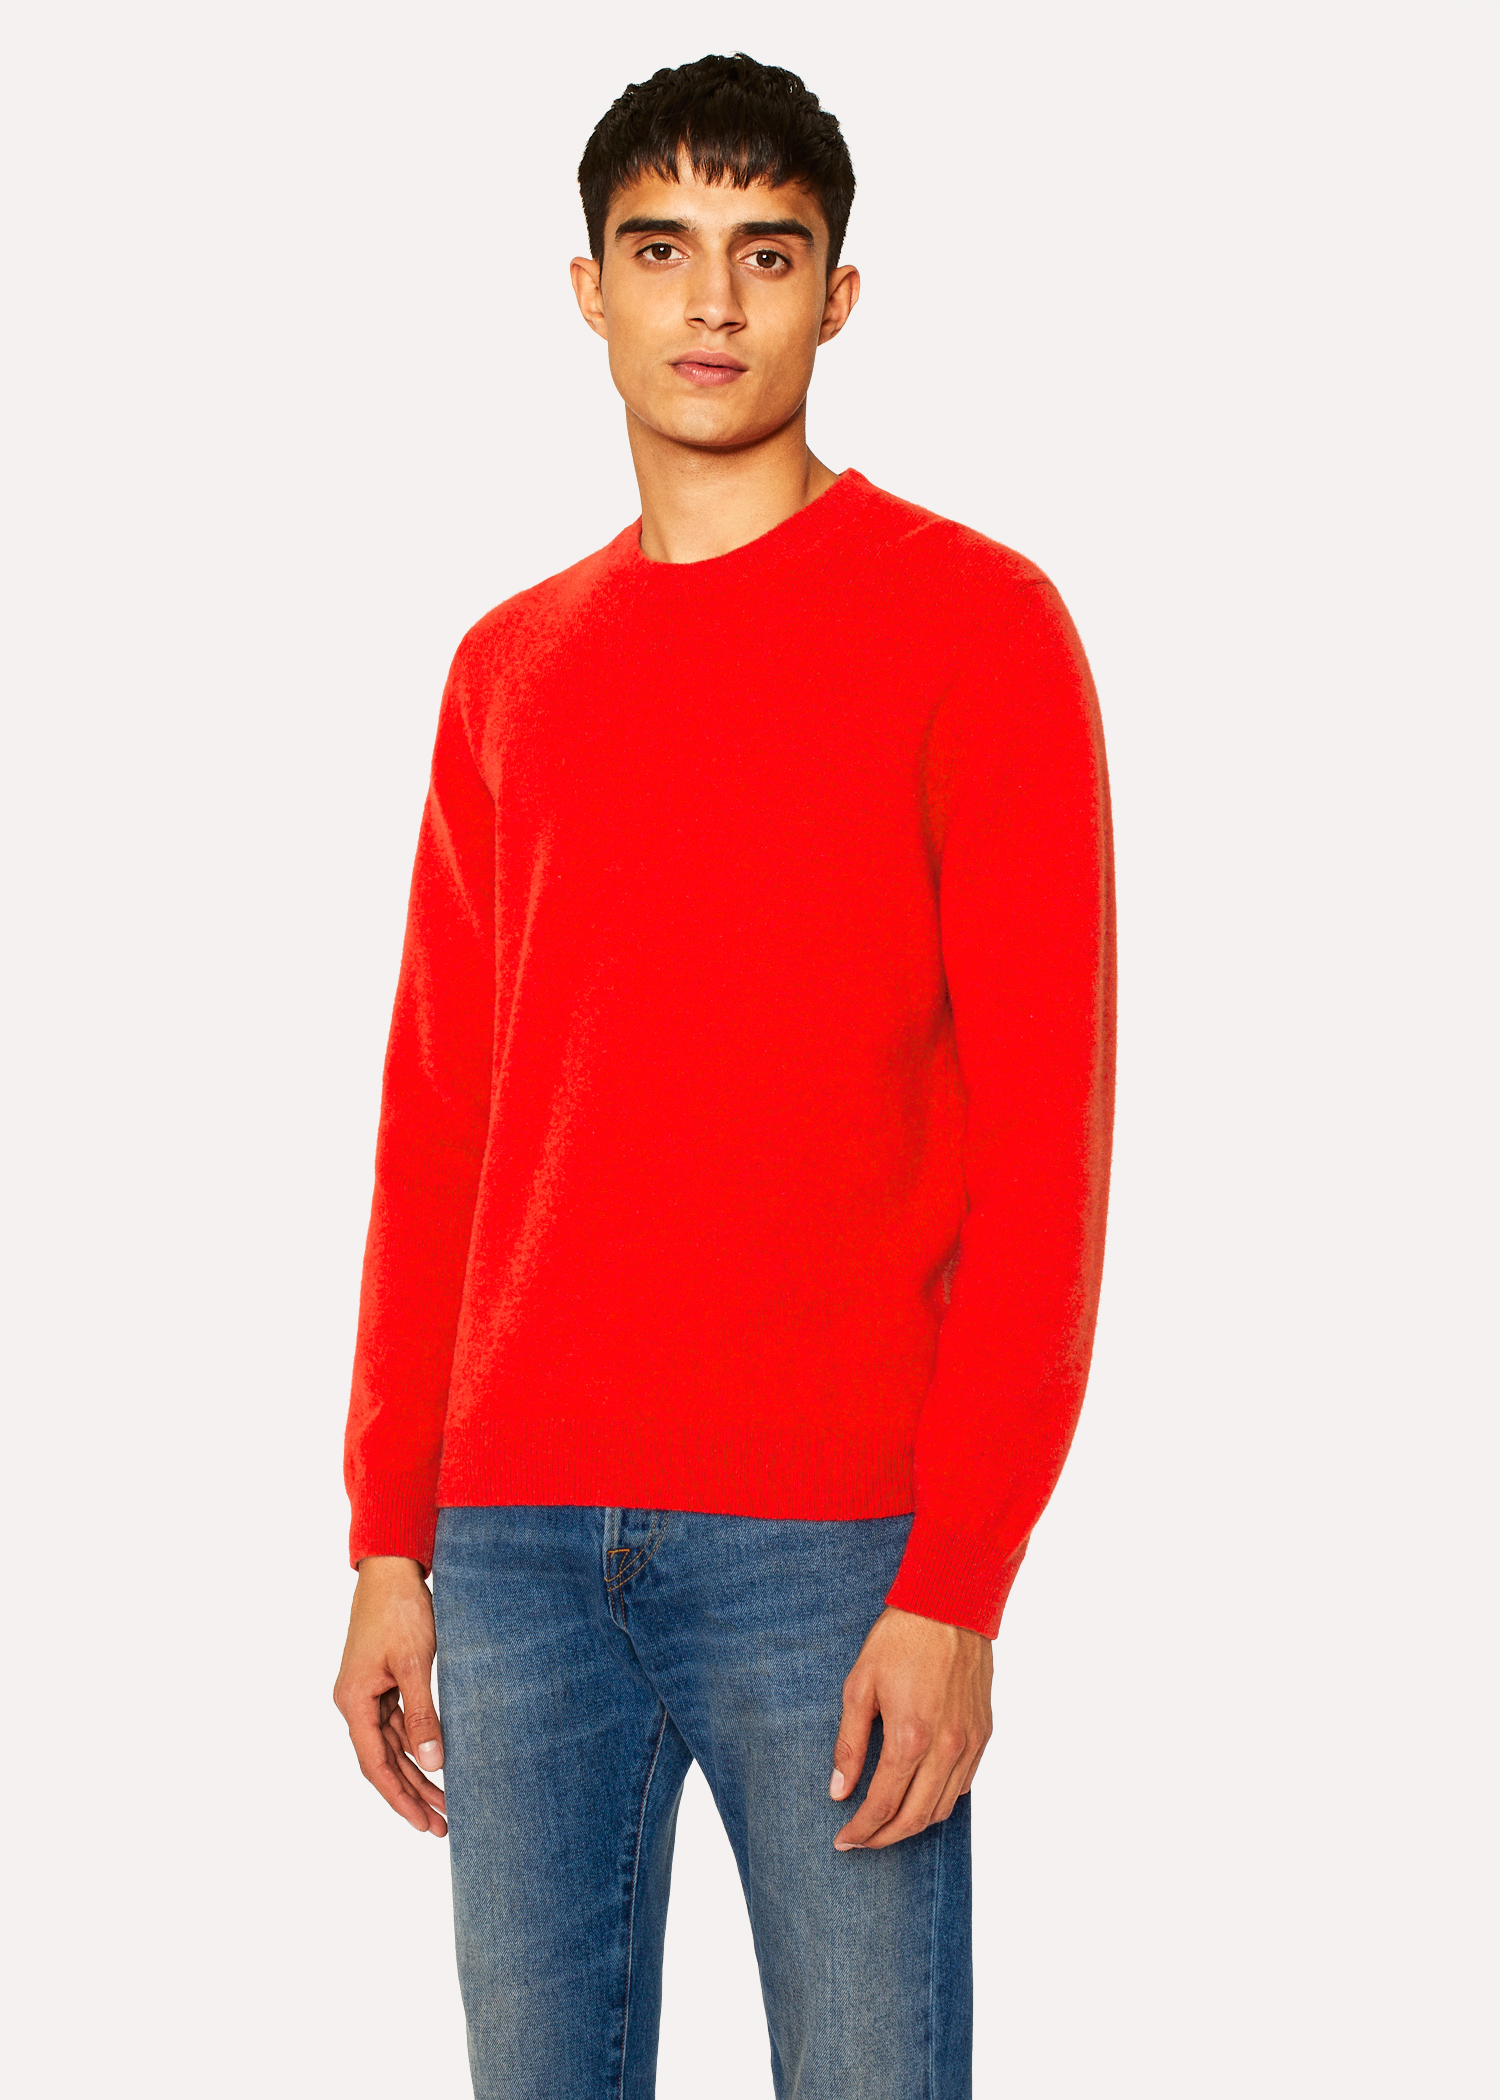 1cef8a04b Men s Red Lambswool Sweater - Paul Smith Europe